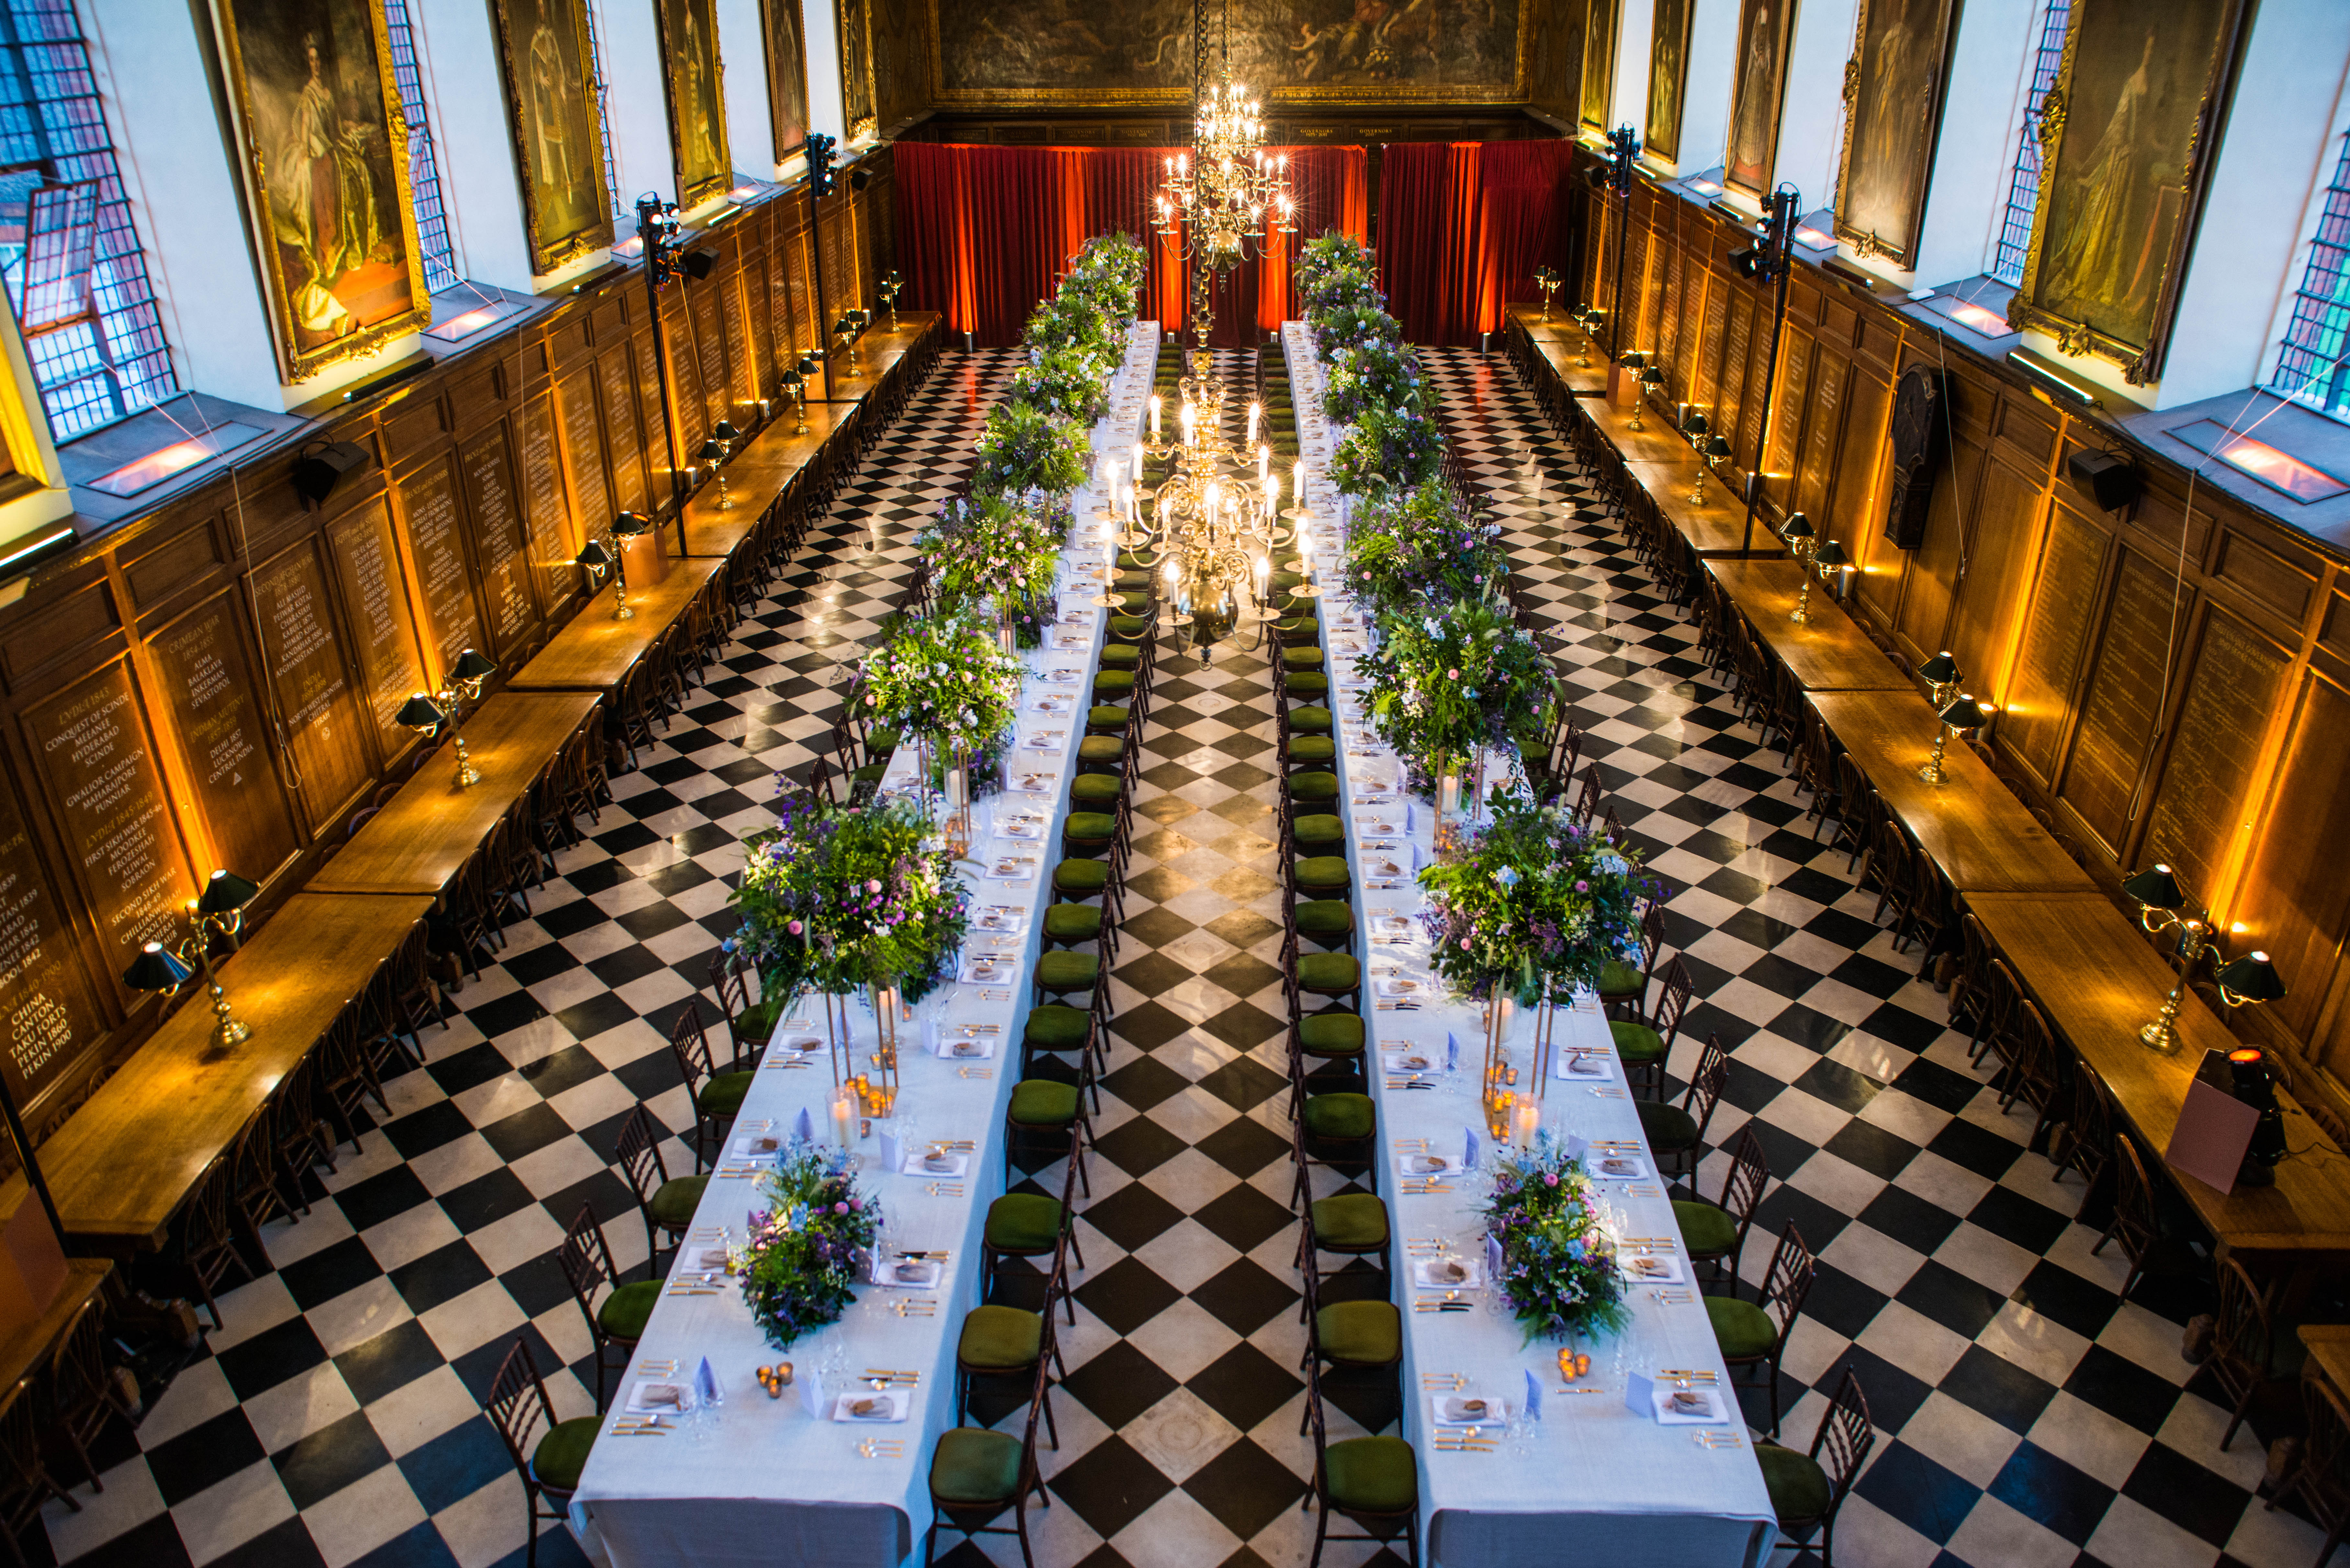 Long Tables of Meadow